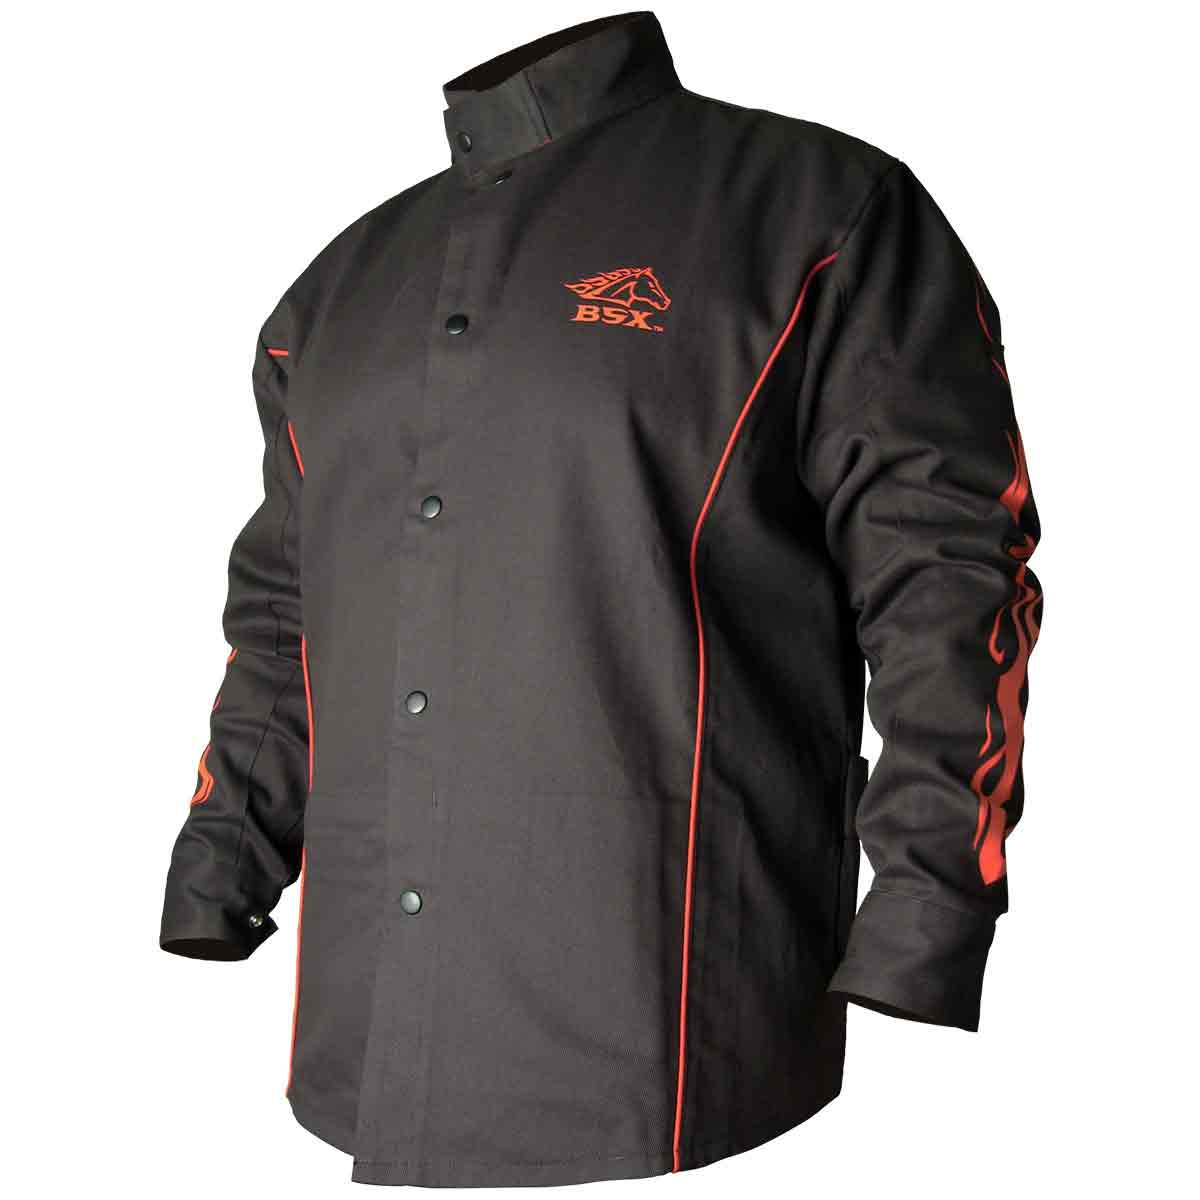 Black Stallion BSX BX9C 9oz. FR Cotton Welding Jacket Black W Red Flames, Small